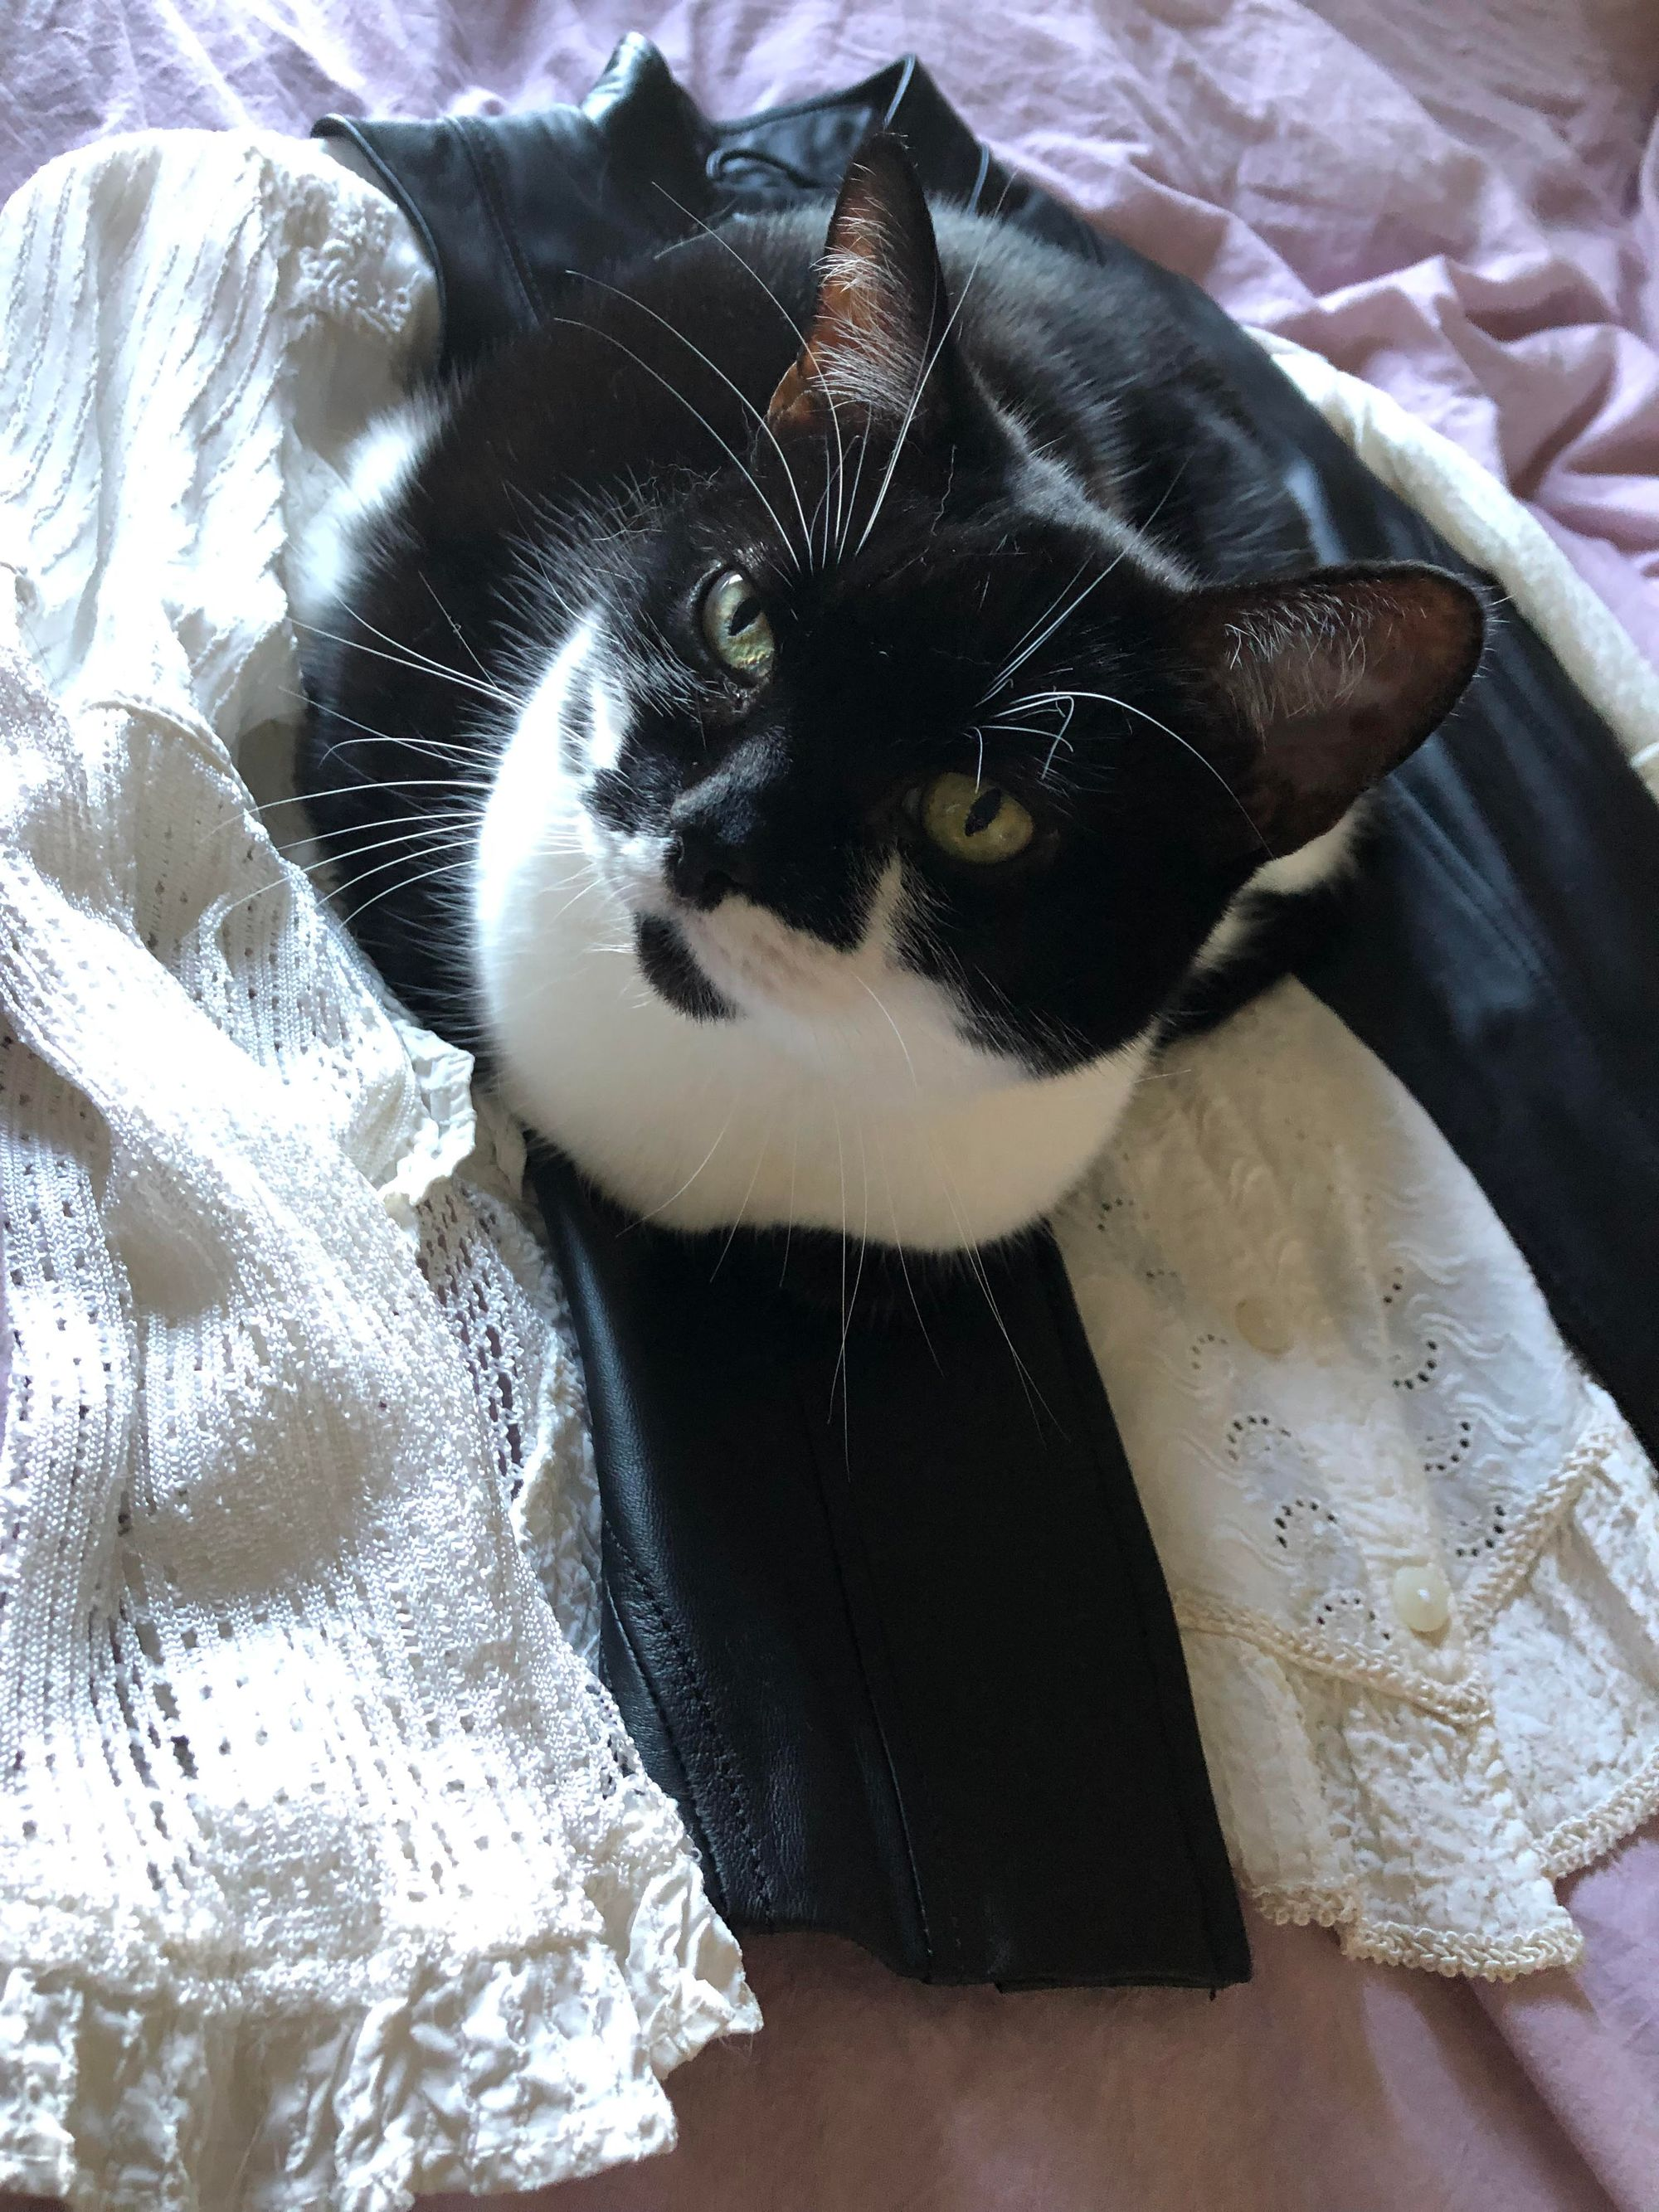 Close-up of a black and white cat sitting on a black and white outfit laid flat on a lavender bedspread. The outfit is made up of an off-white button-up shirt with lacy detail at the hem and long, flared, lacy sleeves; on top of it is a black leather vest. The cat is sitting on the leather, and the effect of perspective makes her look a bit like she's grown out of the outfit.